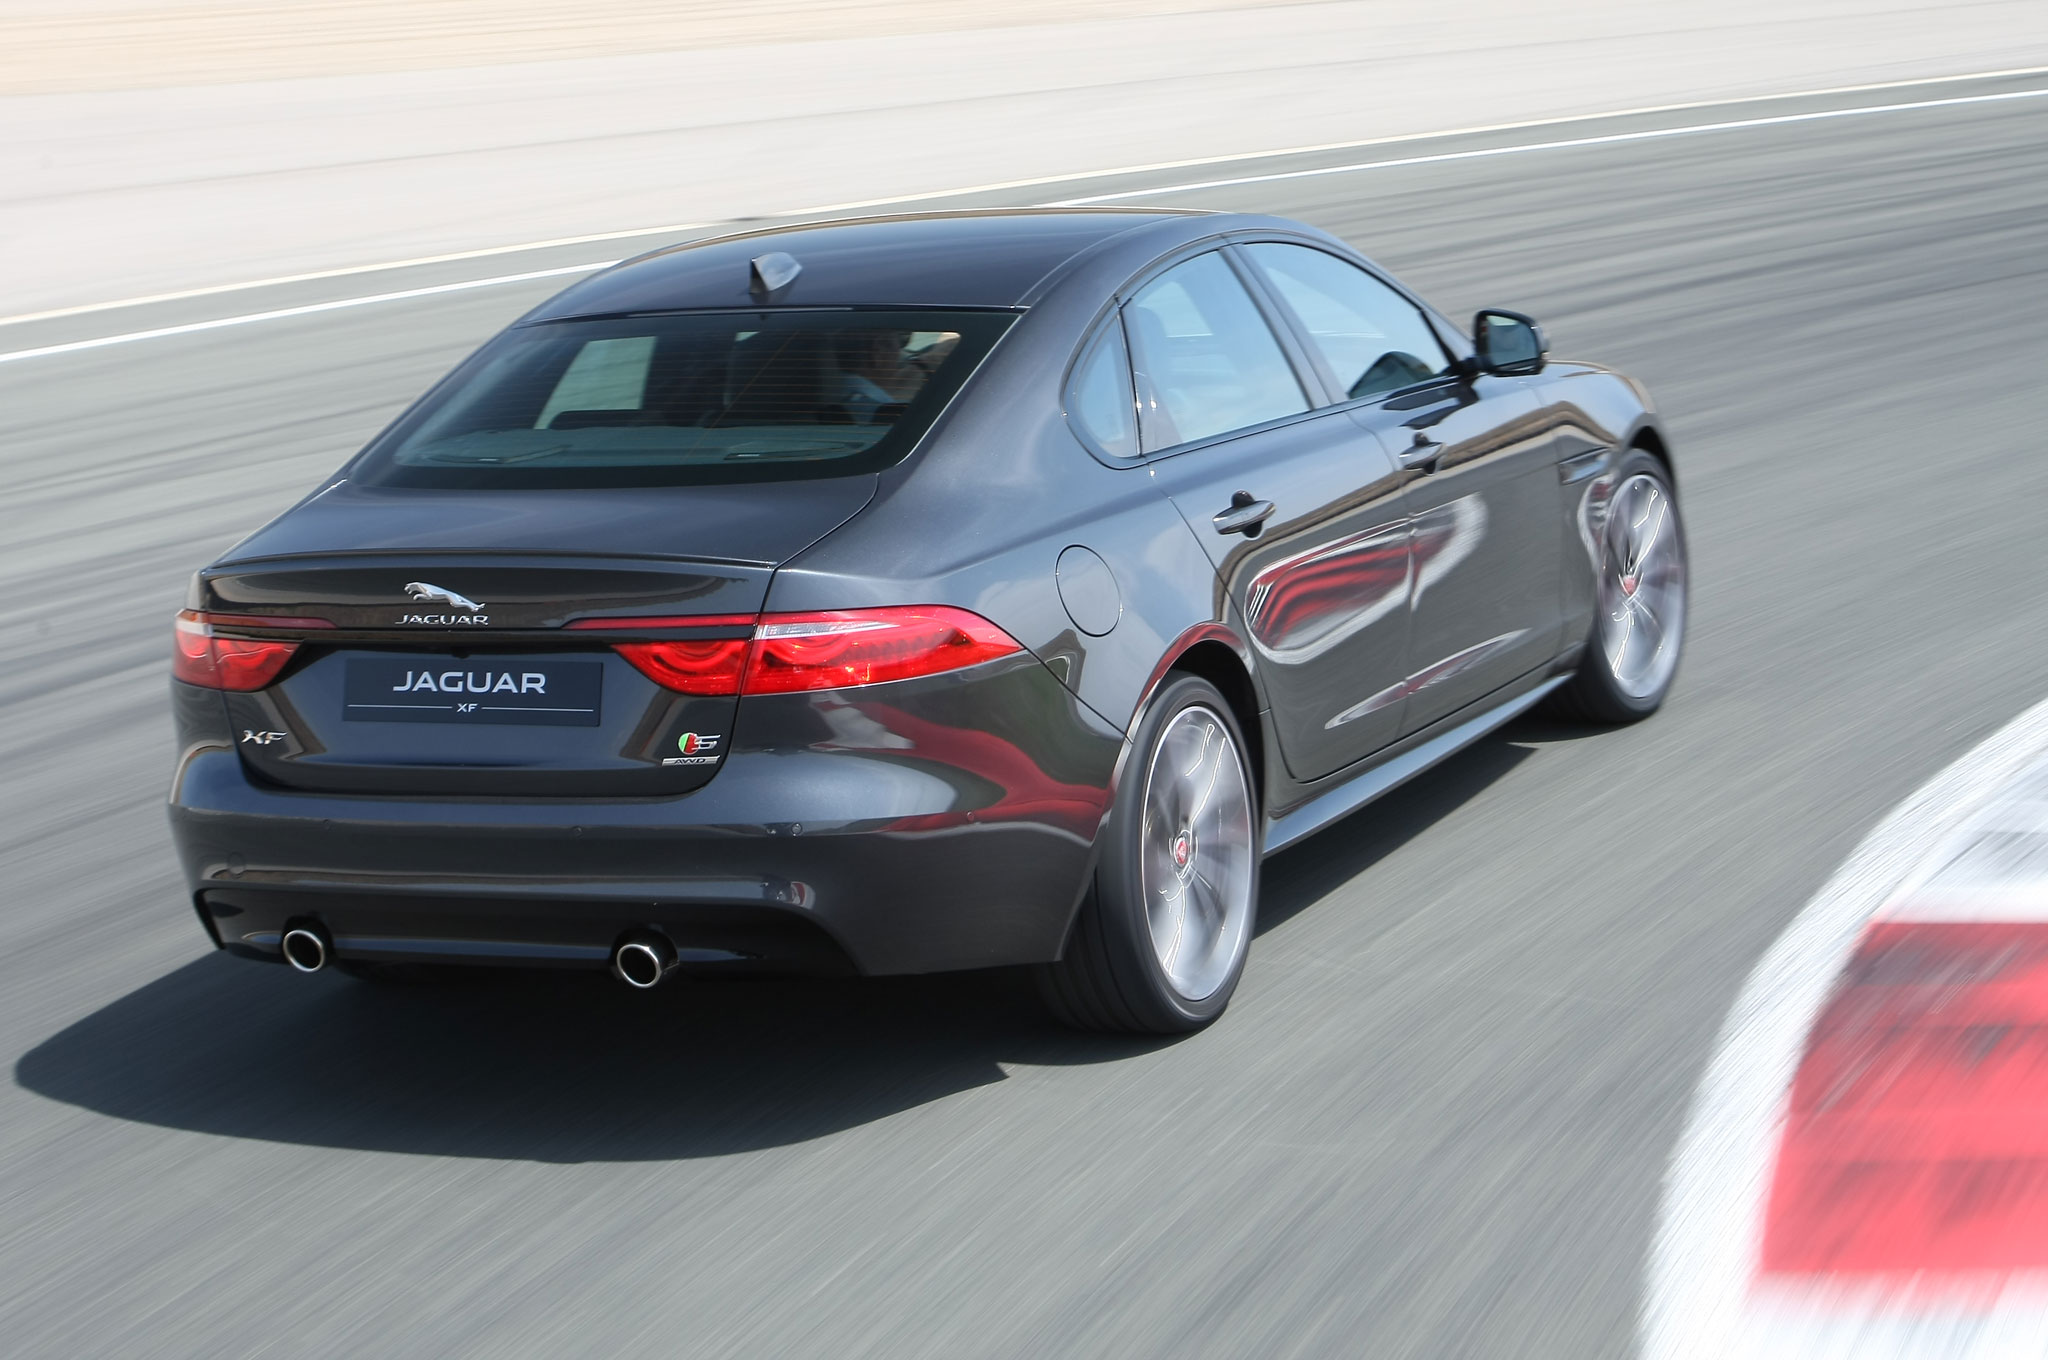 coupe price the xf cars highway on jaguar noble future car of blood powerful